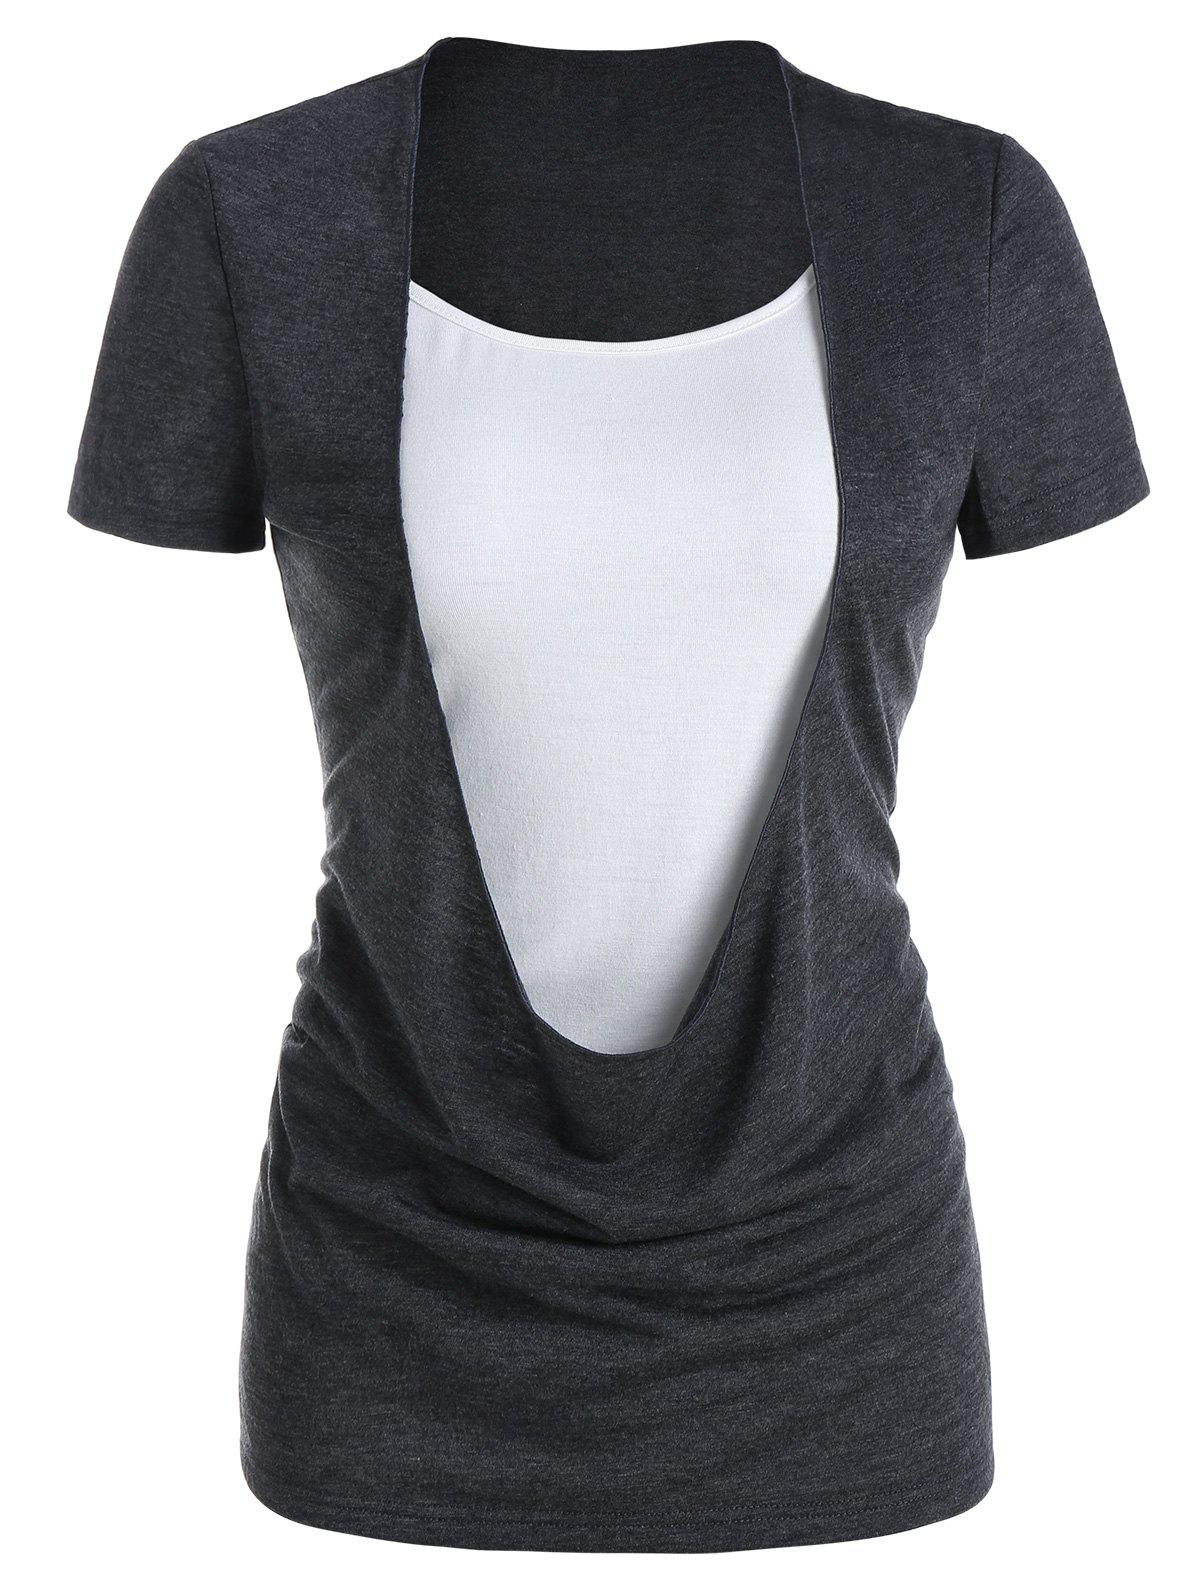 Fashion Draped Heathered Faux Twinset T-shirt